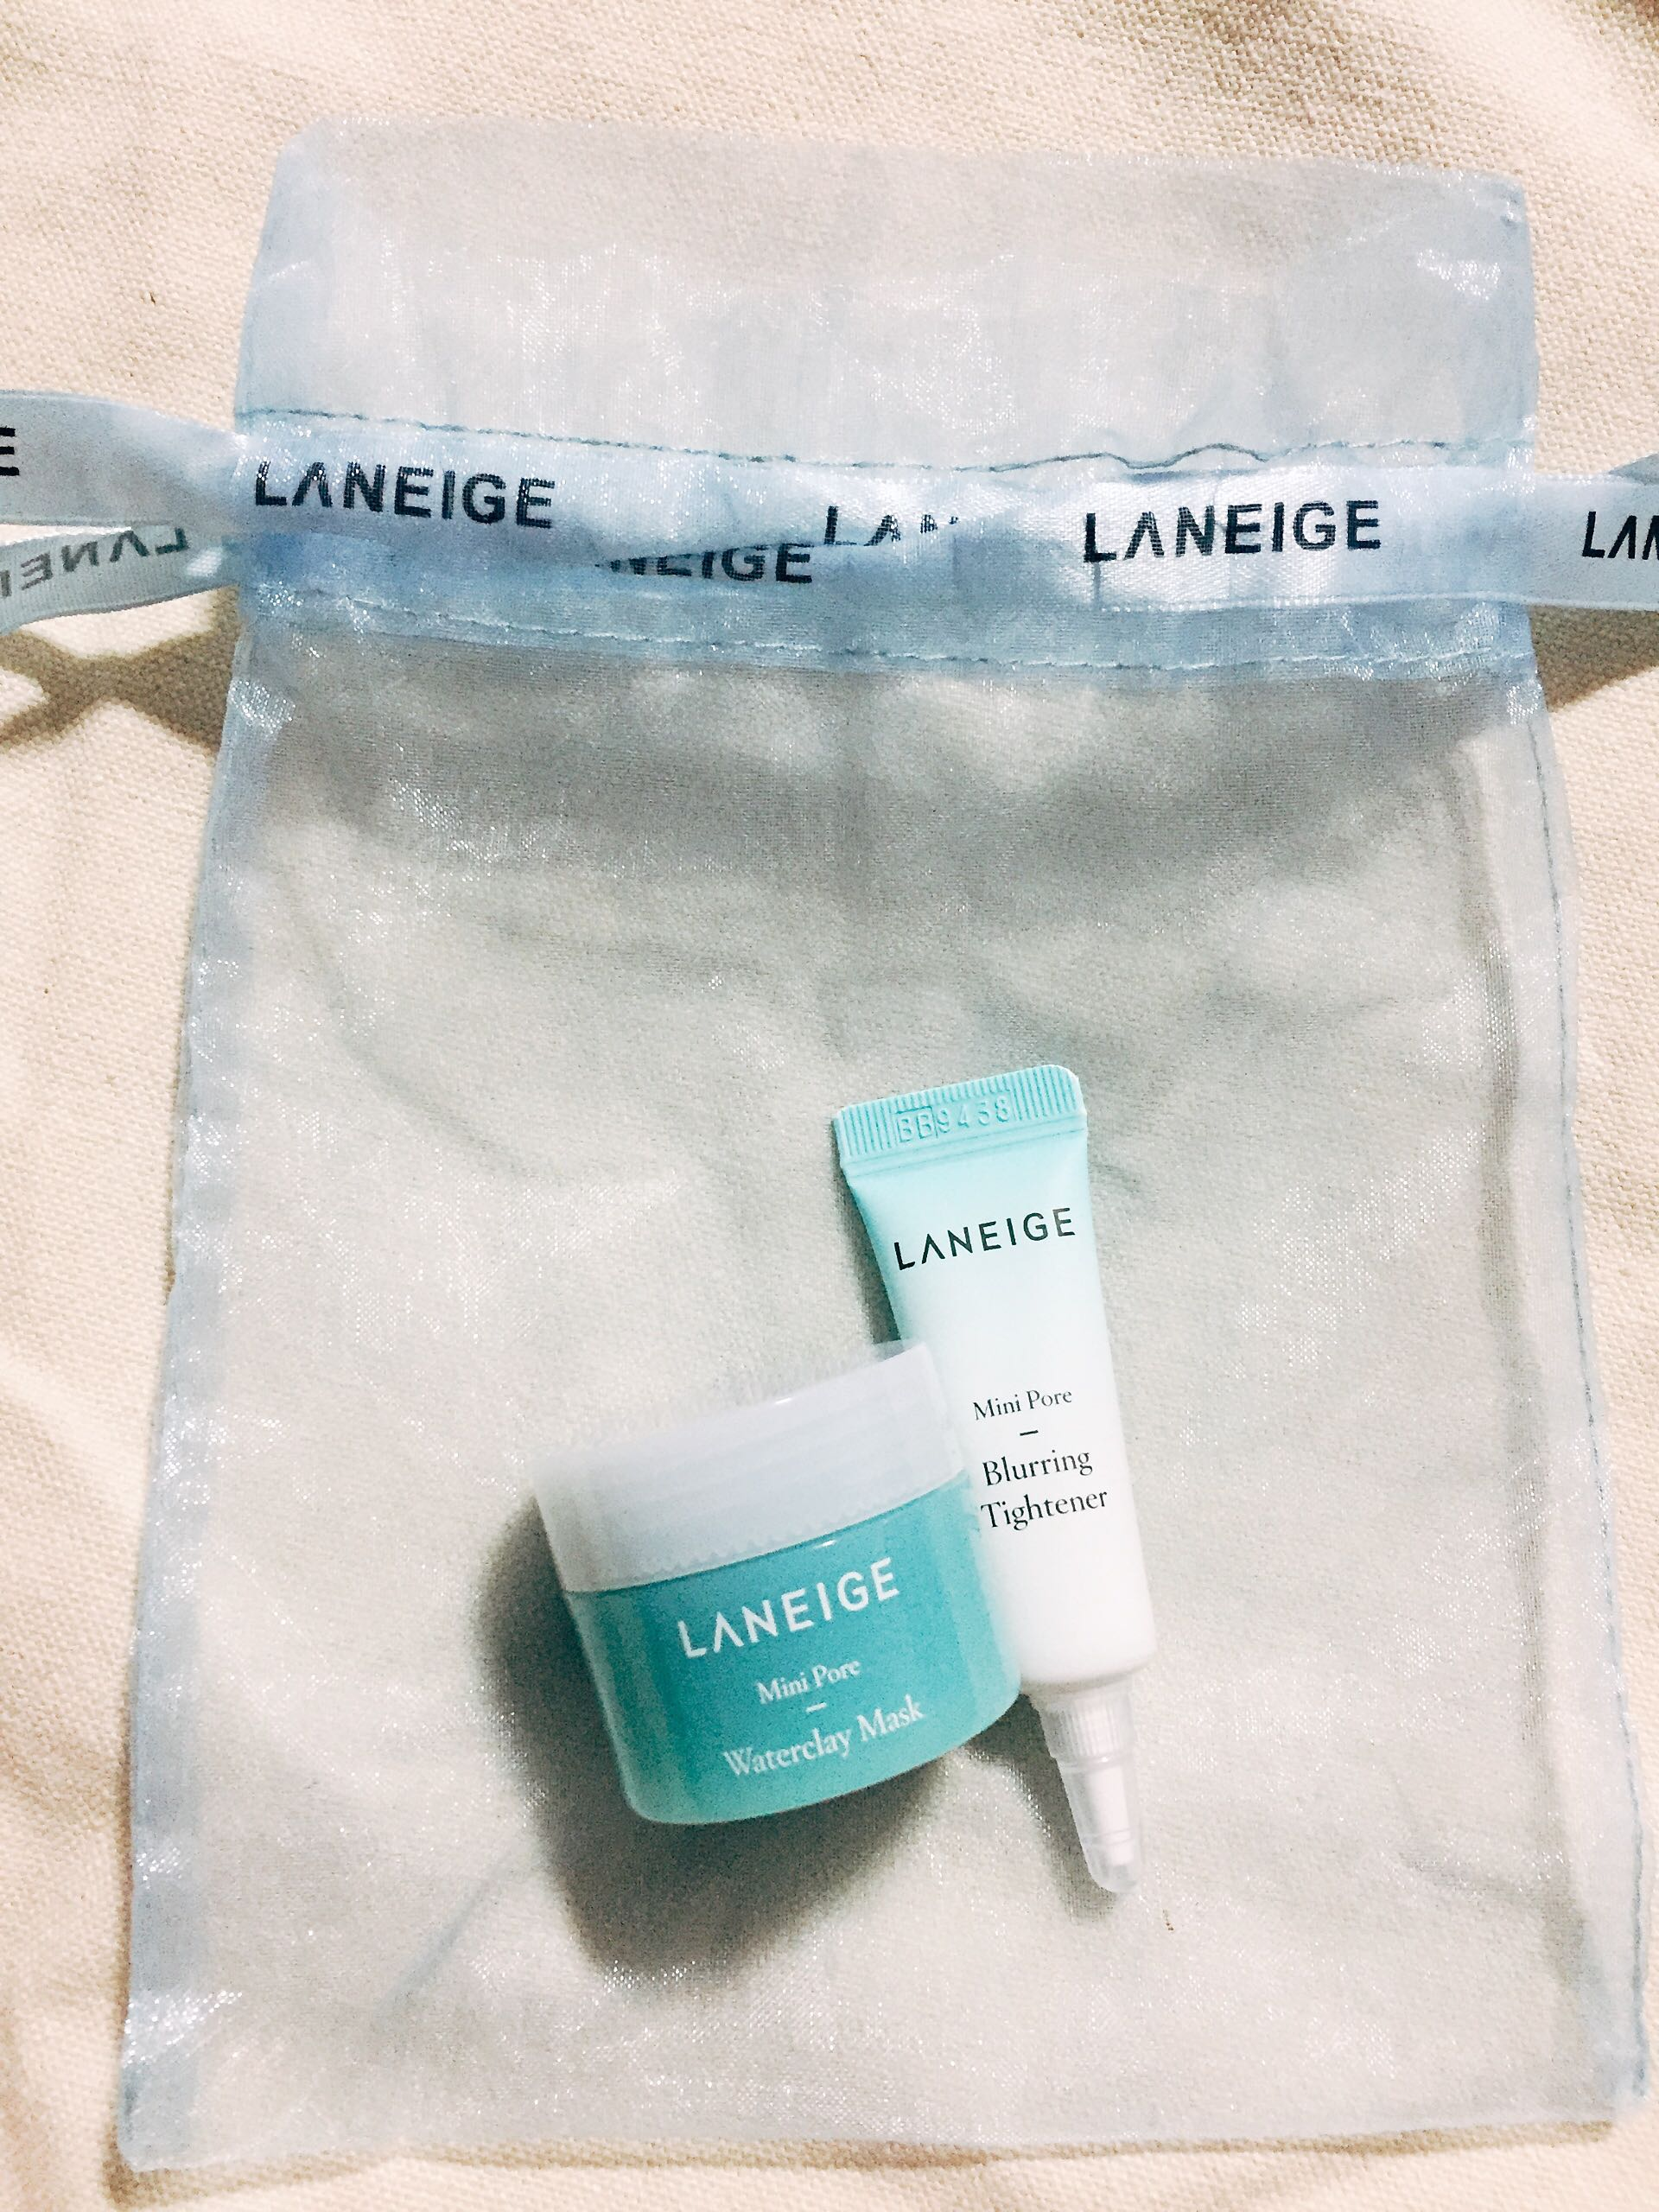 Laneige Mini Pore Blurring Tightener Products And Minis Wateclay Mask 2 Items Minipore Waterclay Health Beauty Face Skin Care On Carousell